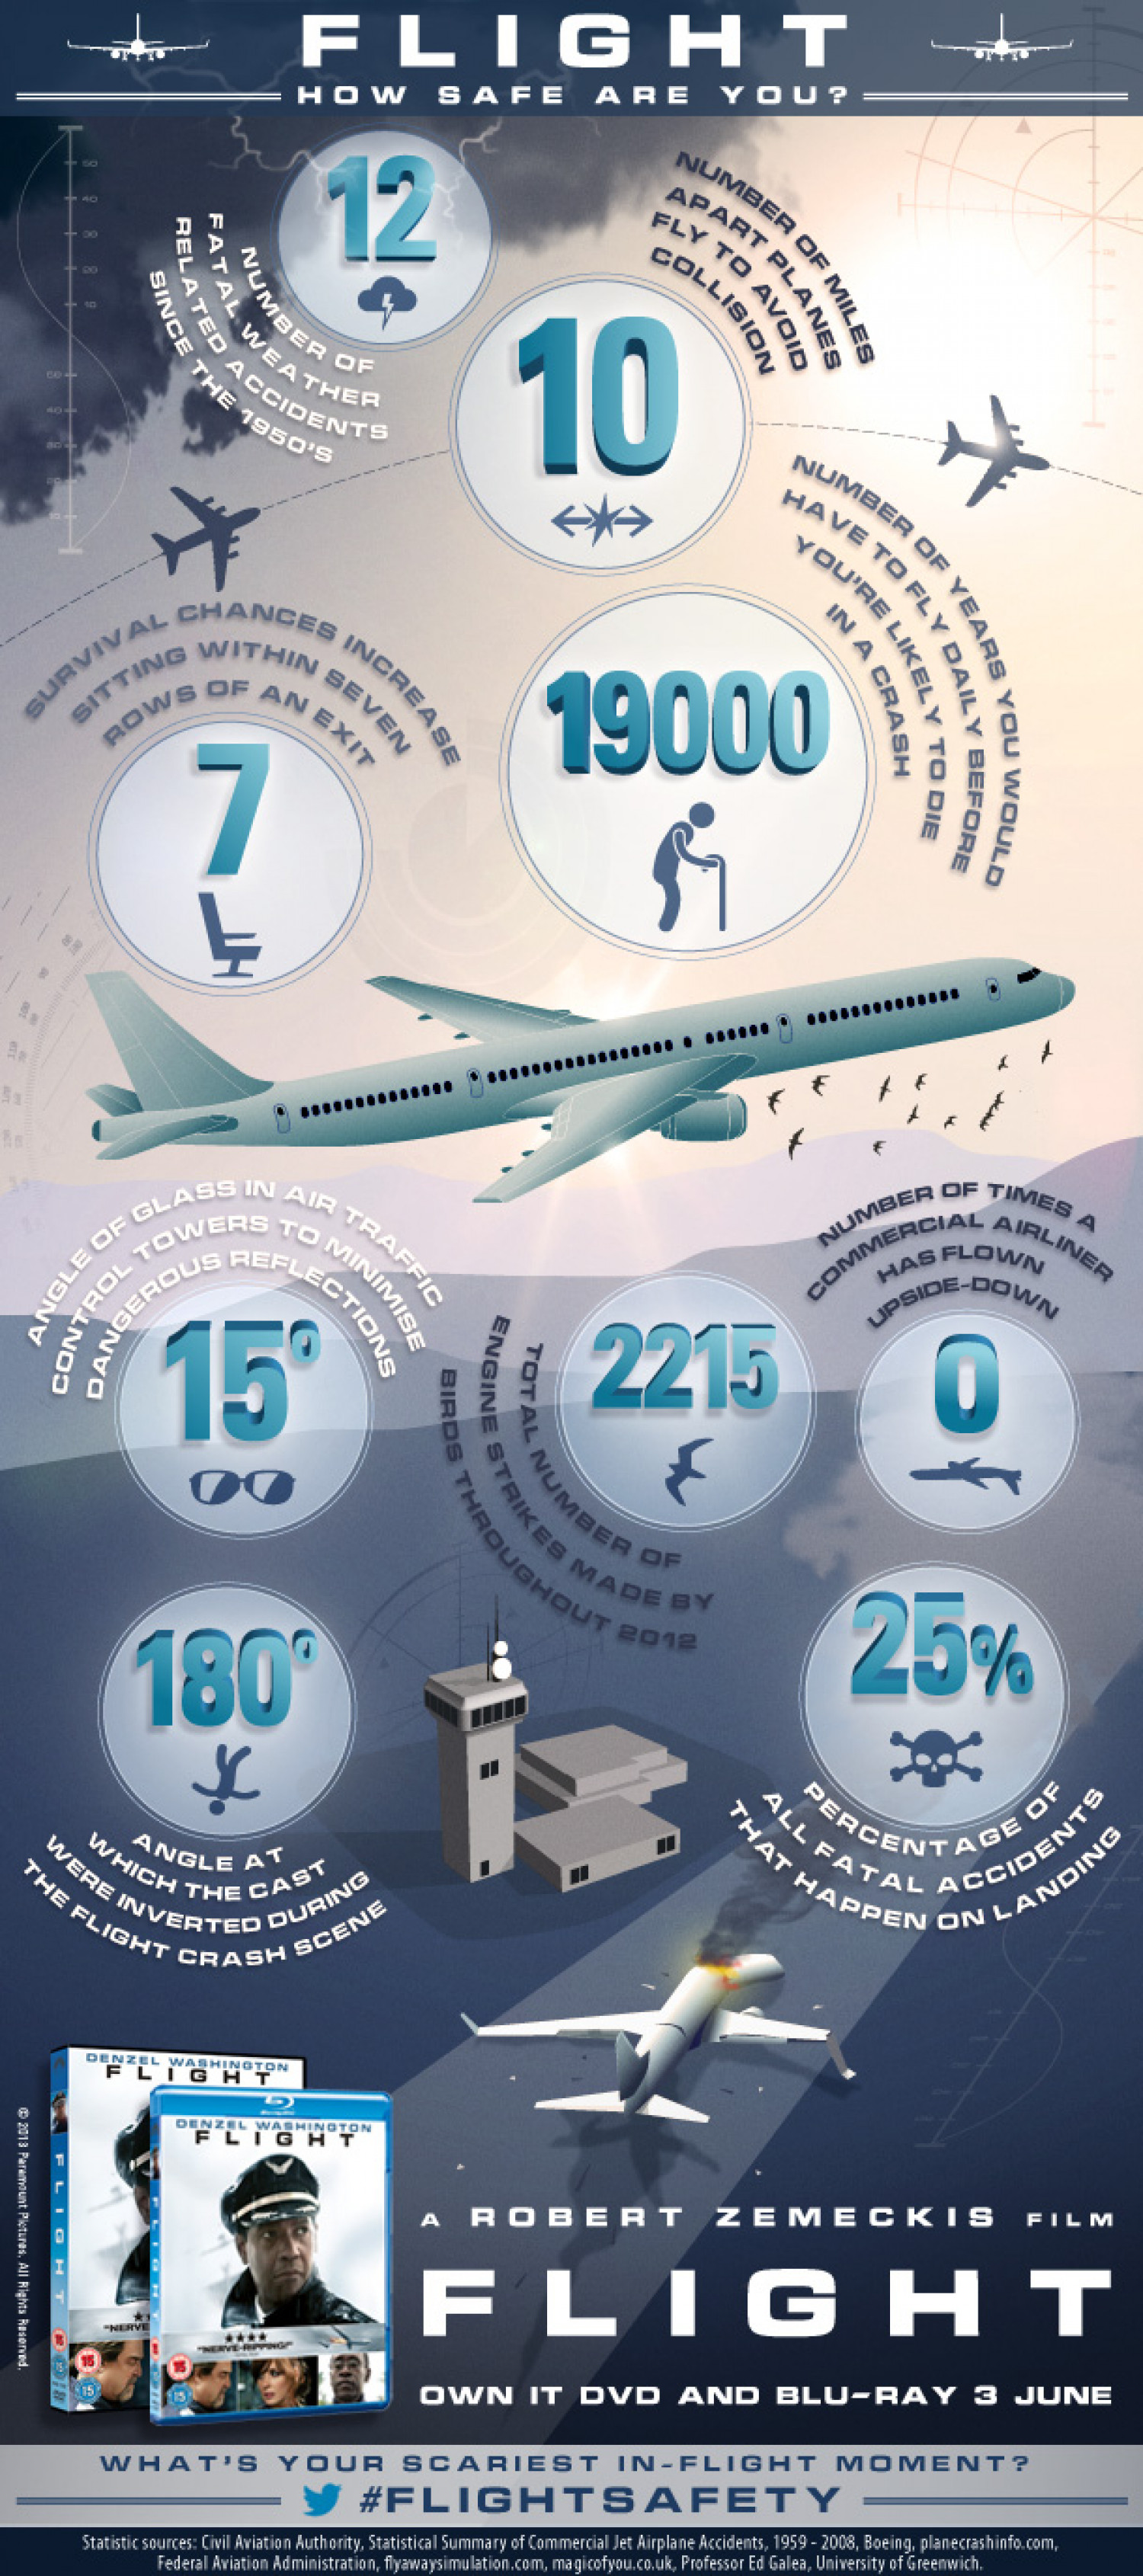 FLIGHT SAFETY Infographic